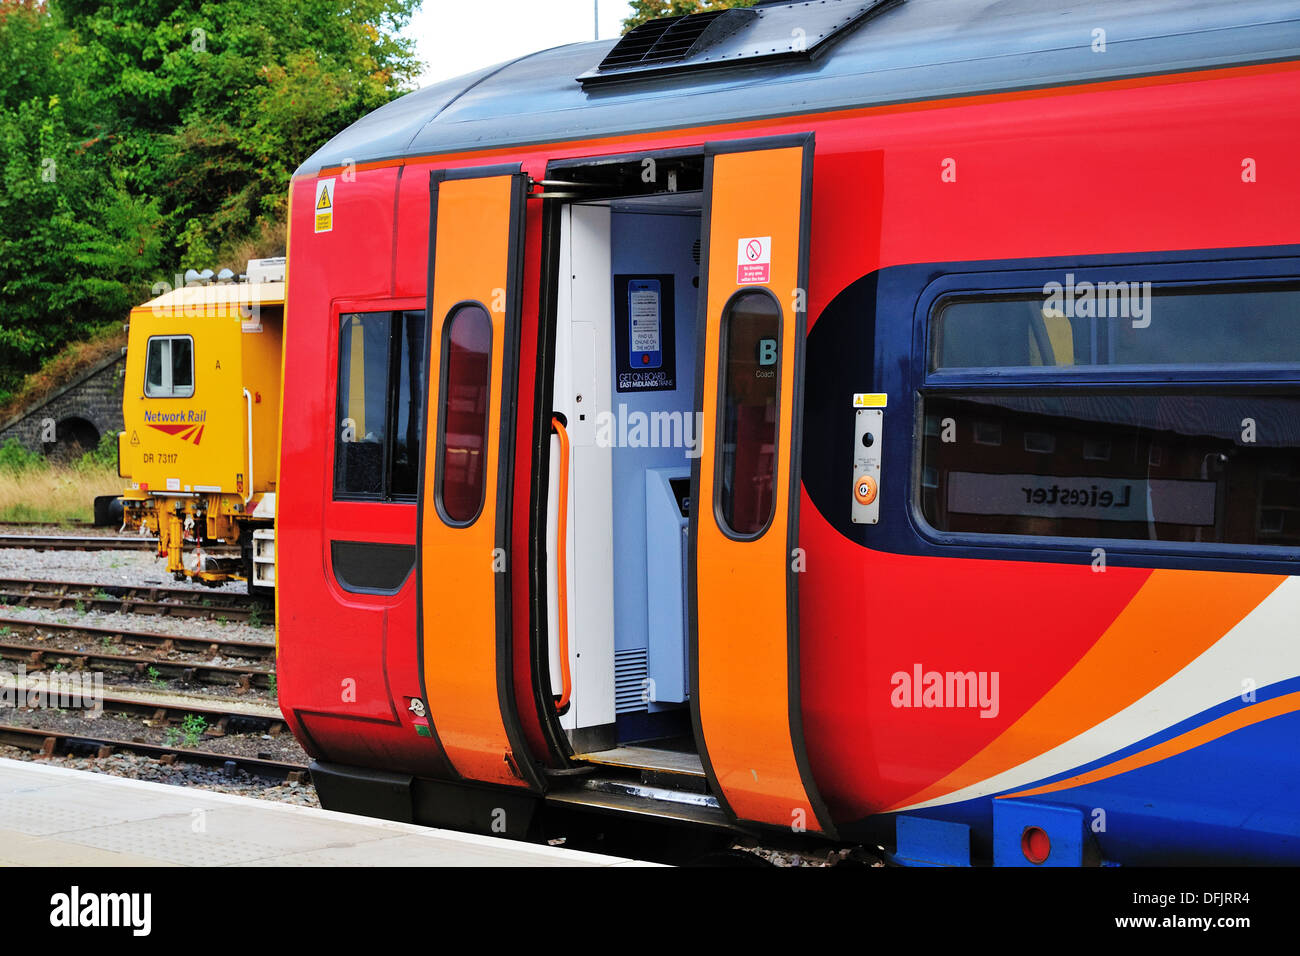 East Midlands Trains regional passenger train waiting at Leicester station with its doors open. - Stock Image